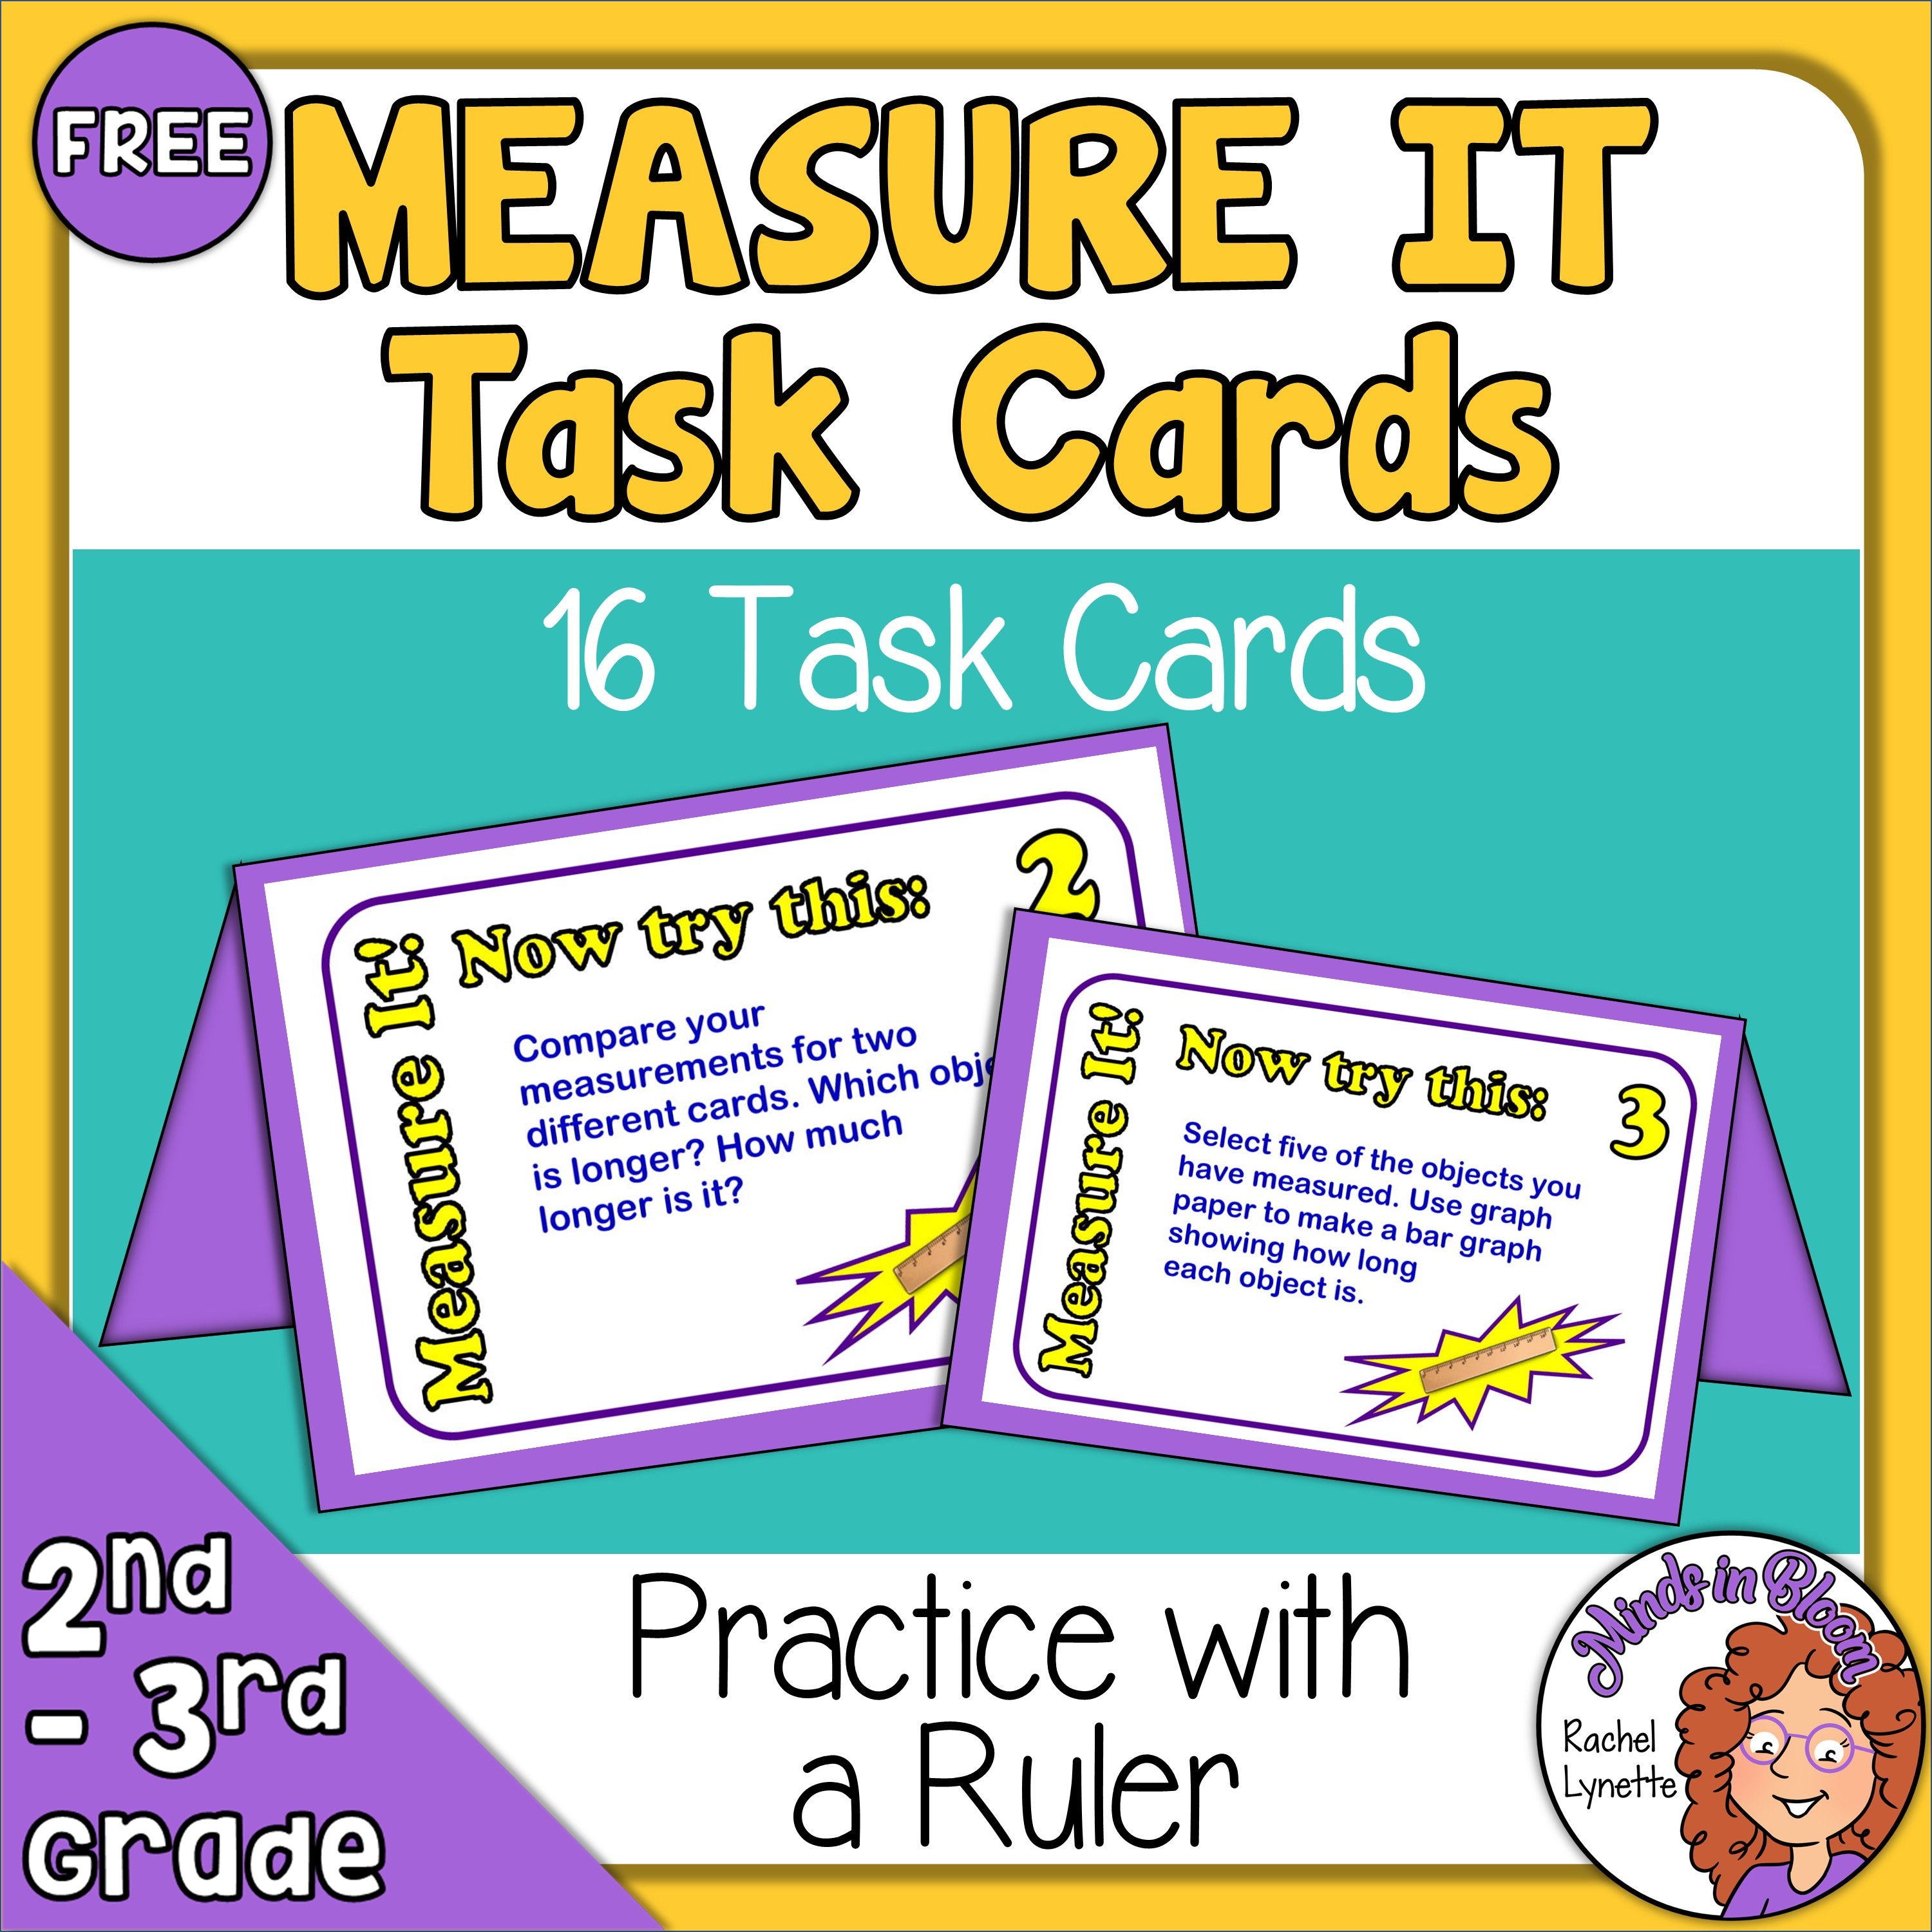 FREE Measure It! Task Cards for Grades 2-3 FREE Image